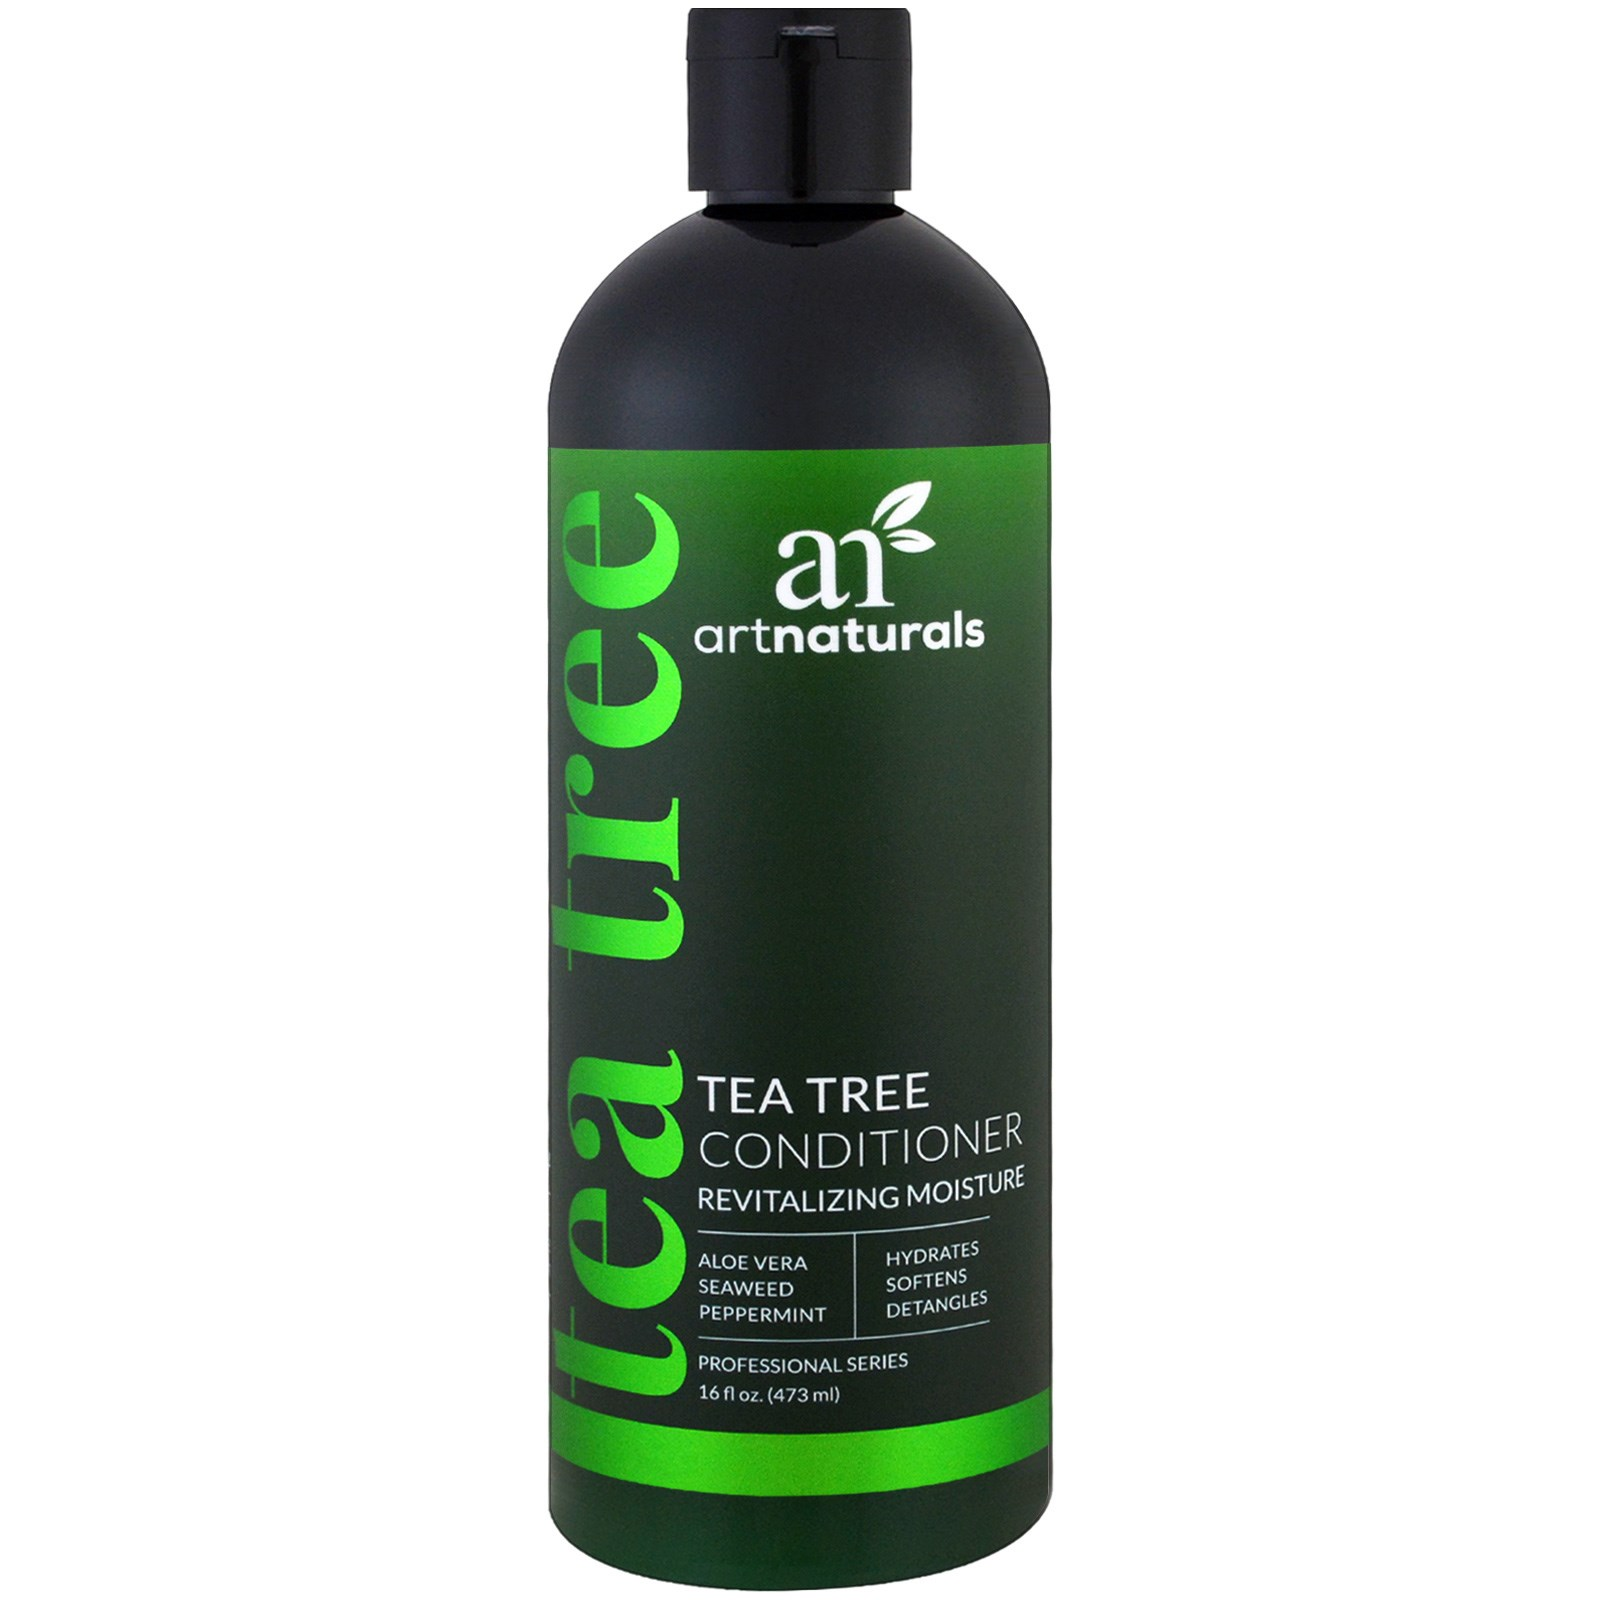 Artnaturals, Tea Tree Conditioner, Revitalizing Moisture, 16 fl oz (473 ml)